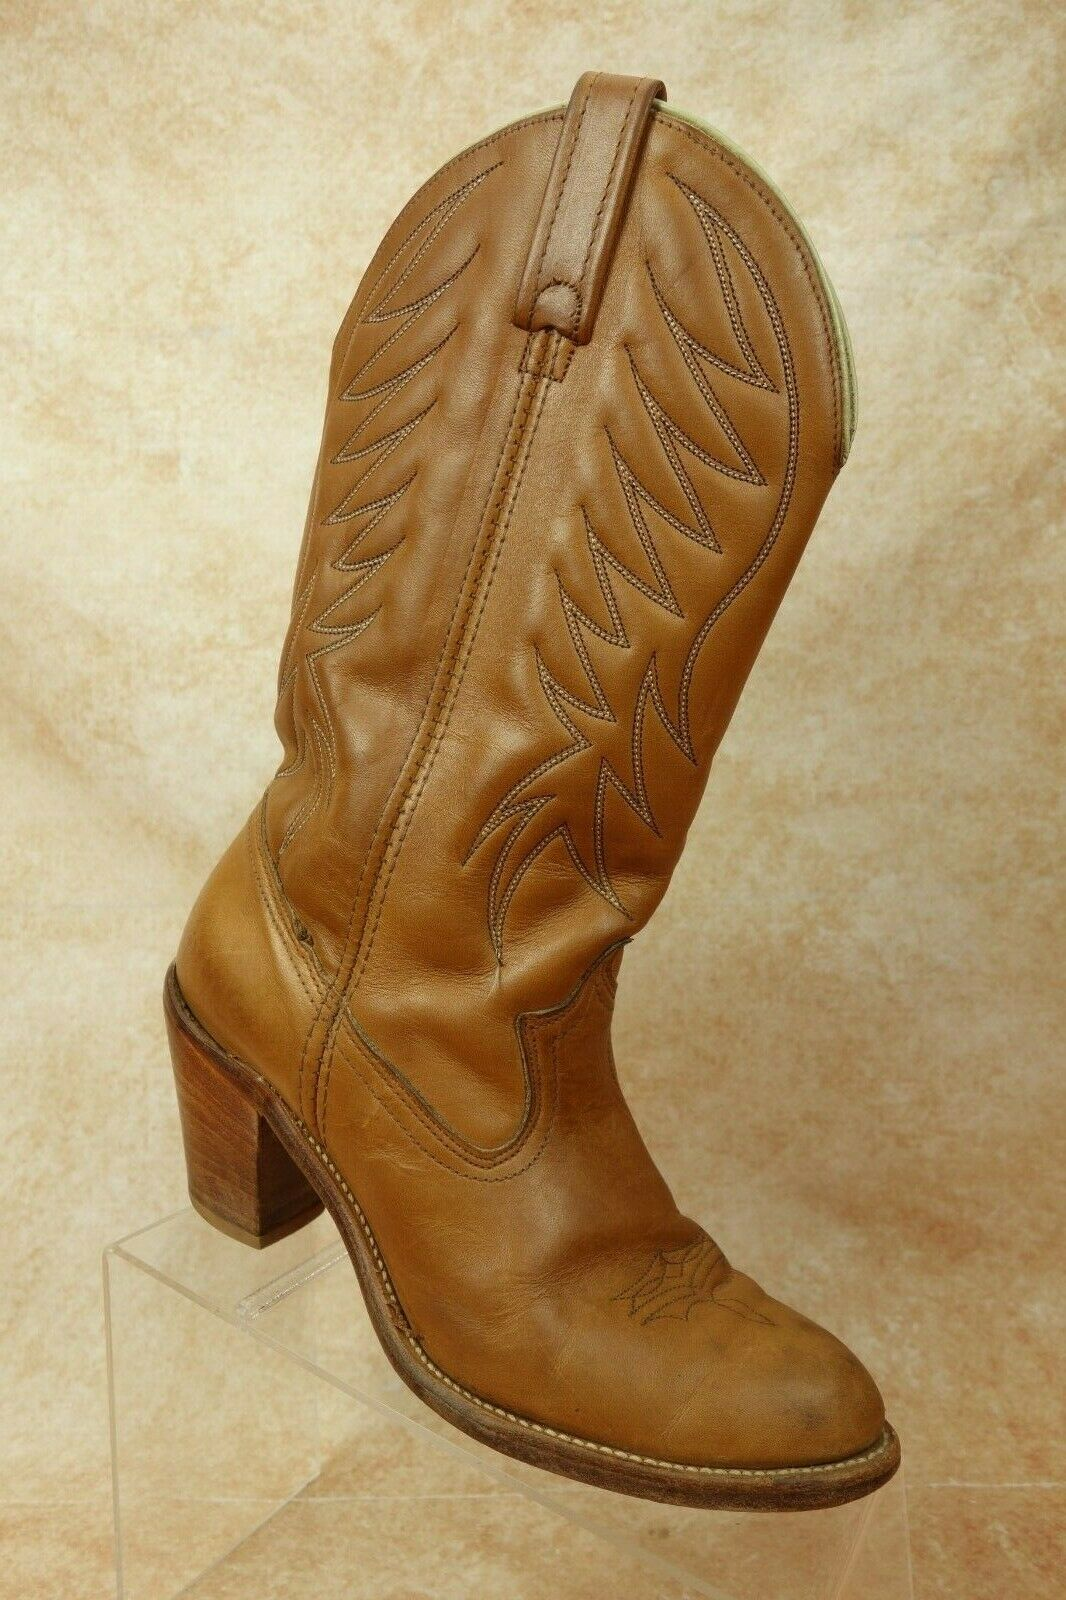 VTG Dingo Circle A Pull On High Heel Western Cowboy Boots Womens 8.5 m US